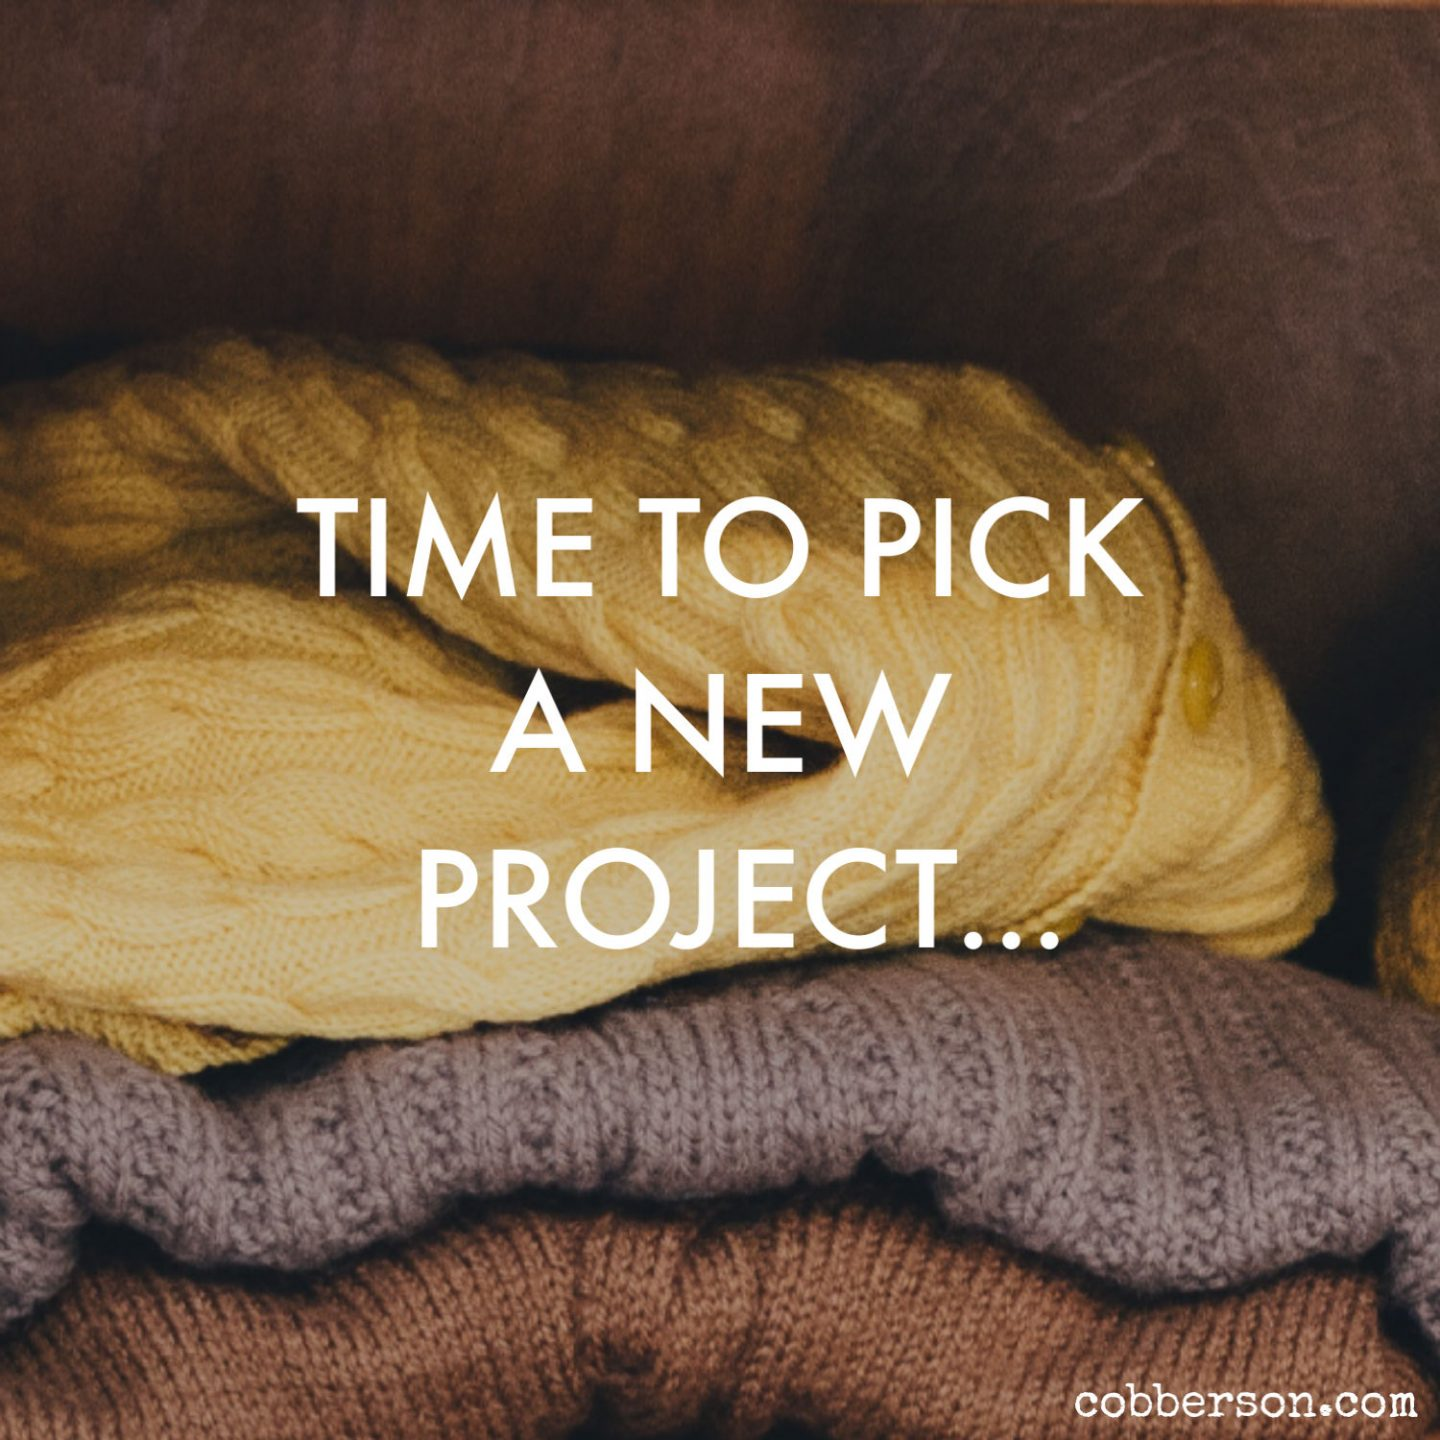 To-do list: Pick a new project